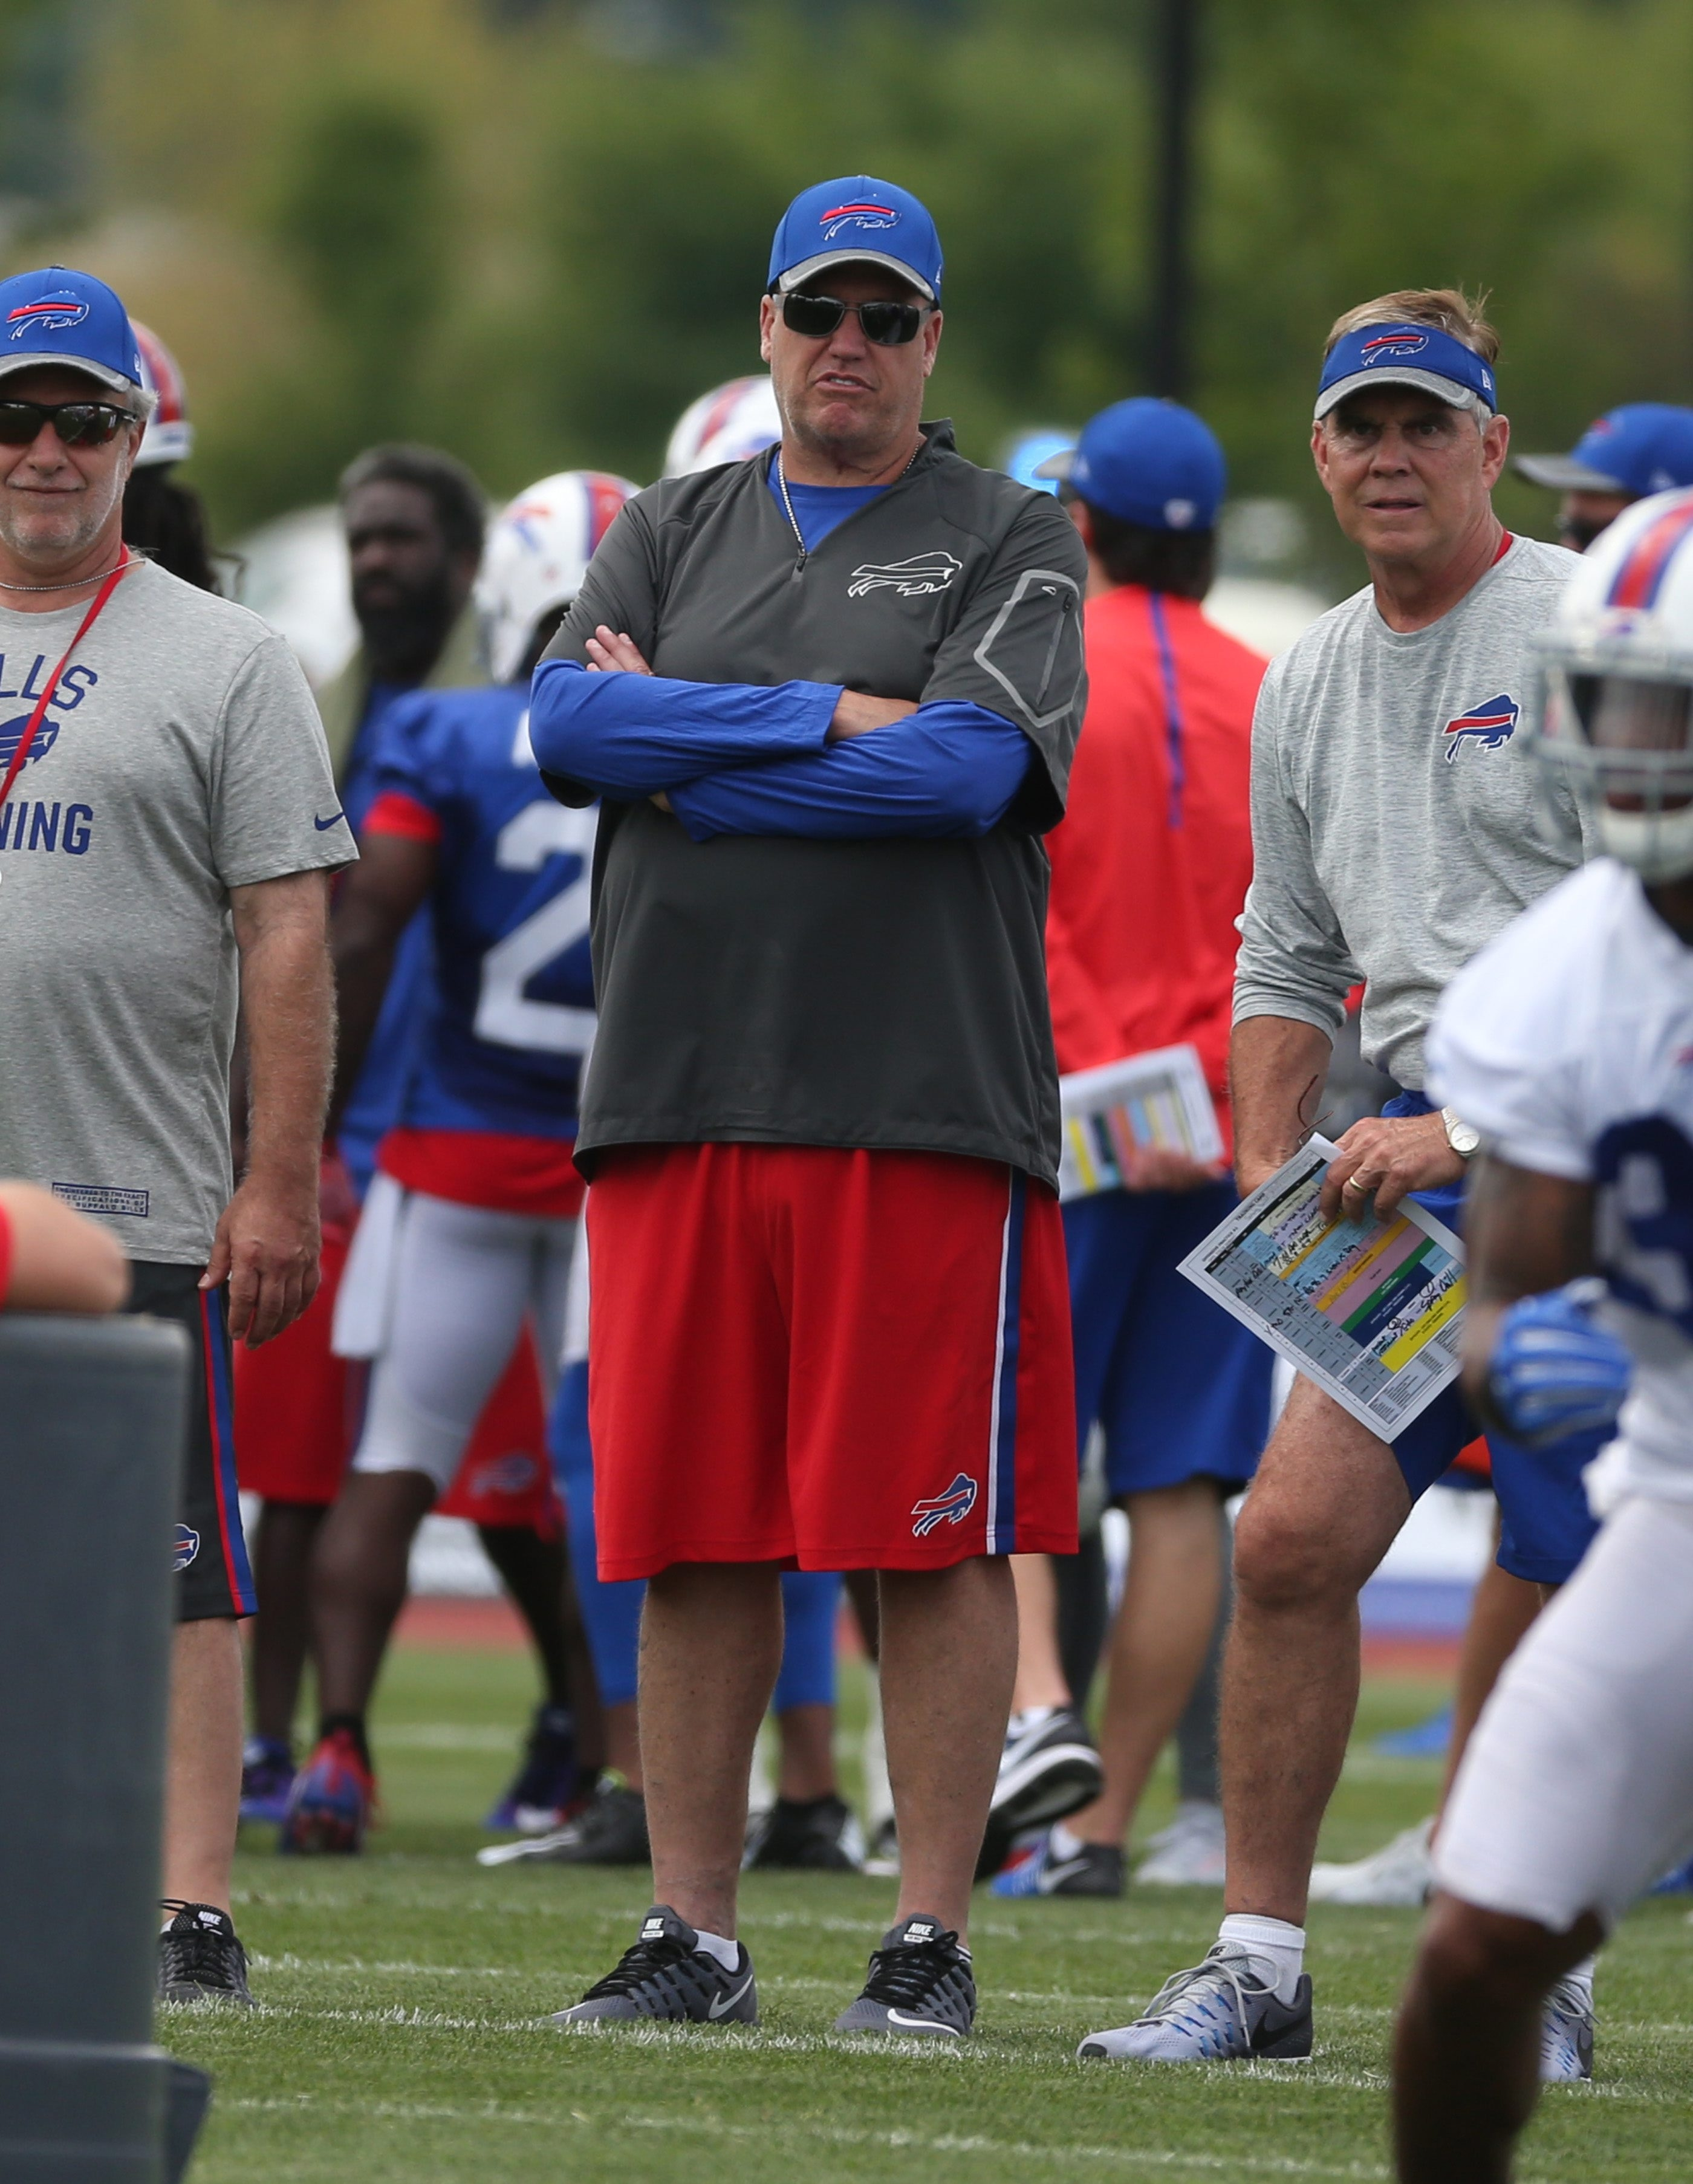 Buffalo Bills head coach Rex Ryan looks over his team  during the second day of training camp at St. John Fisher College in Pittsford,NY on Sunday, July 31, 2016.  (James P. McCoy/ Buffalo News)